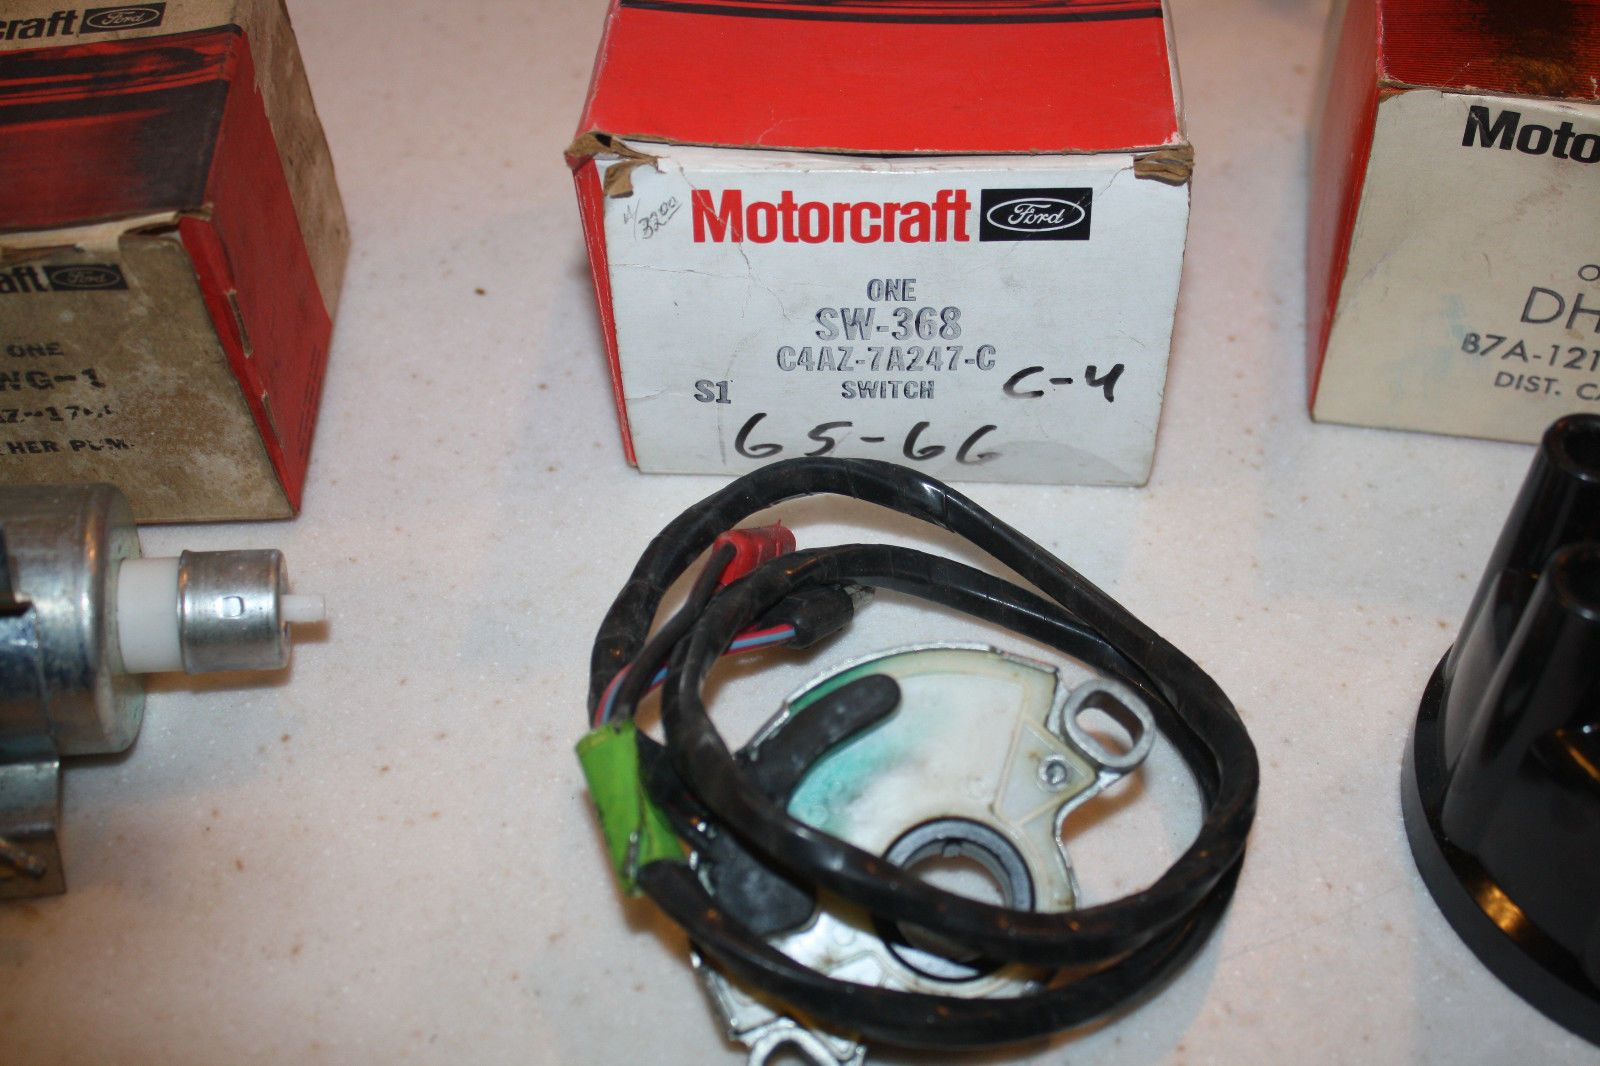 1965 66 ford mustang neutral safety switch p n c4az 7a247 c ebay